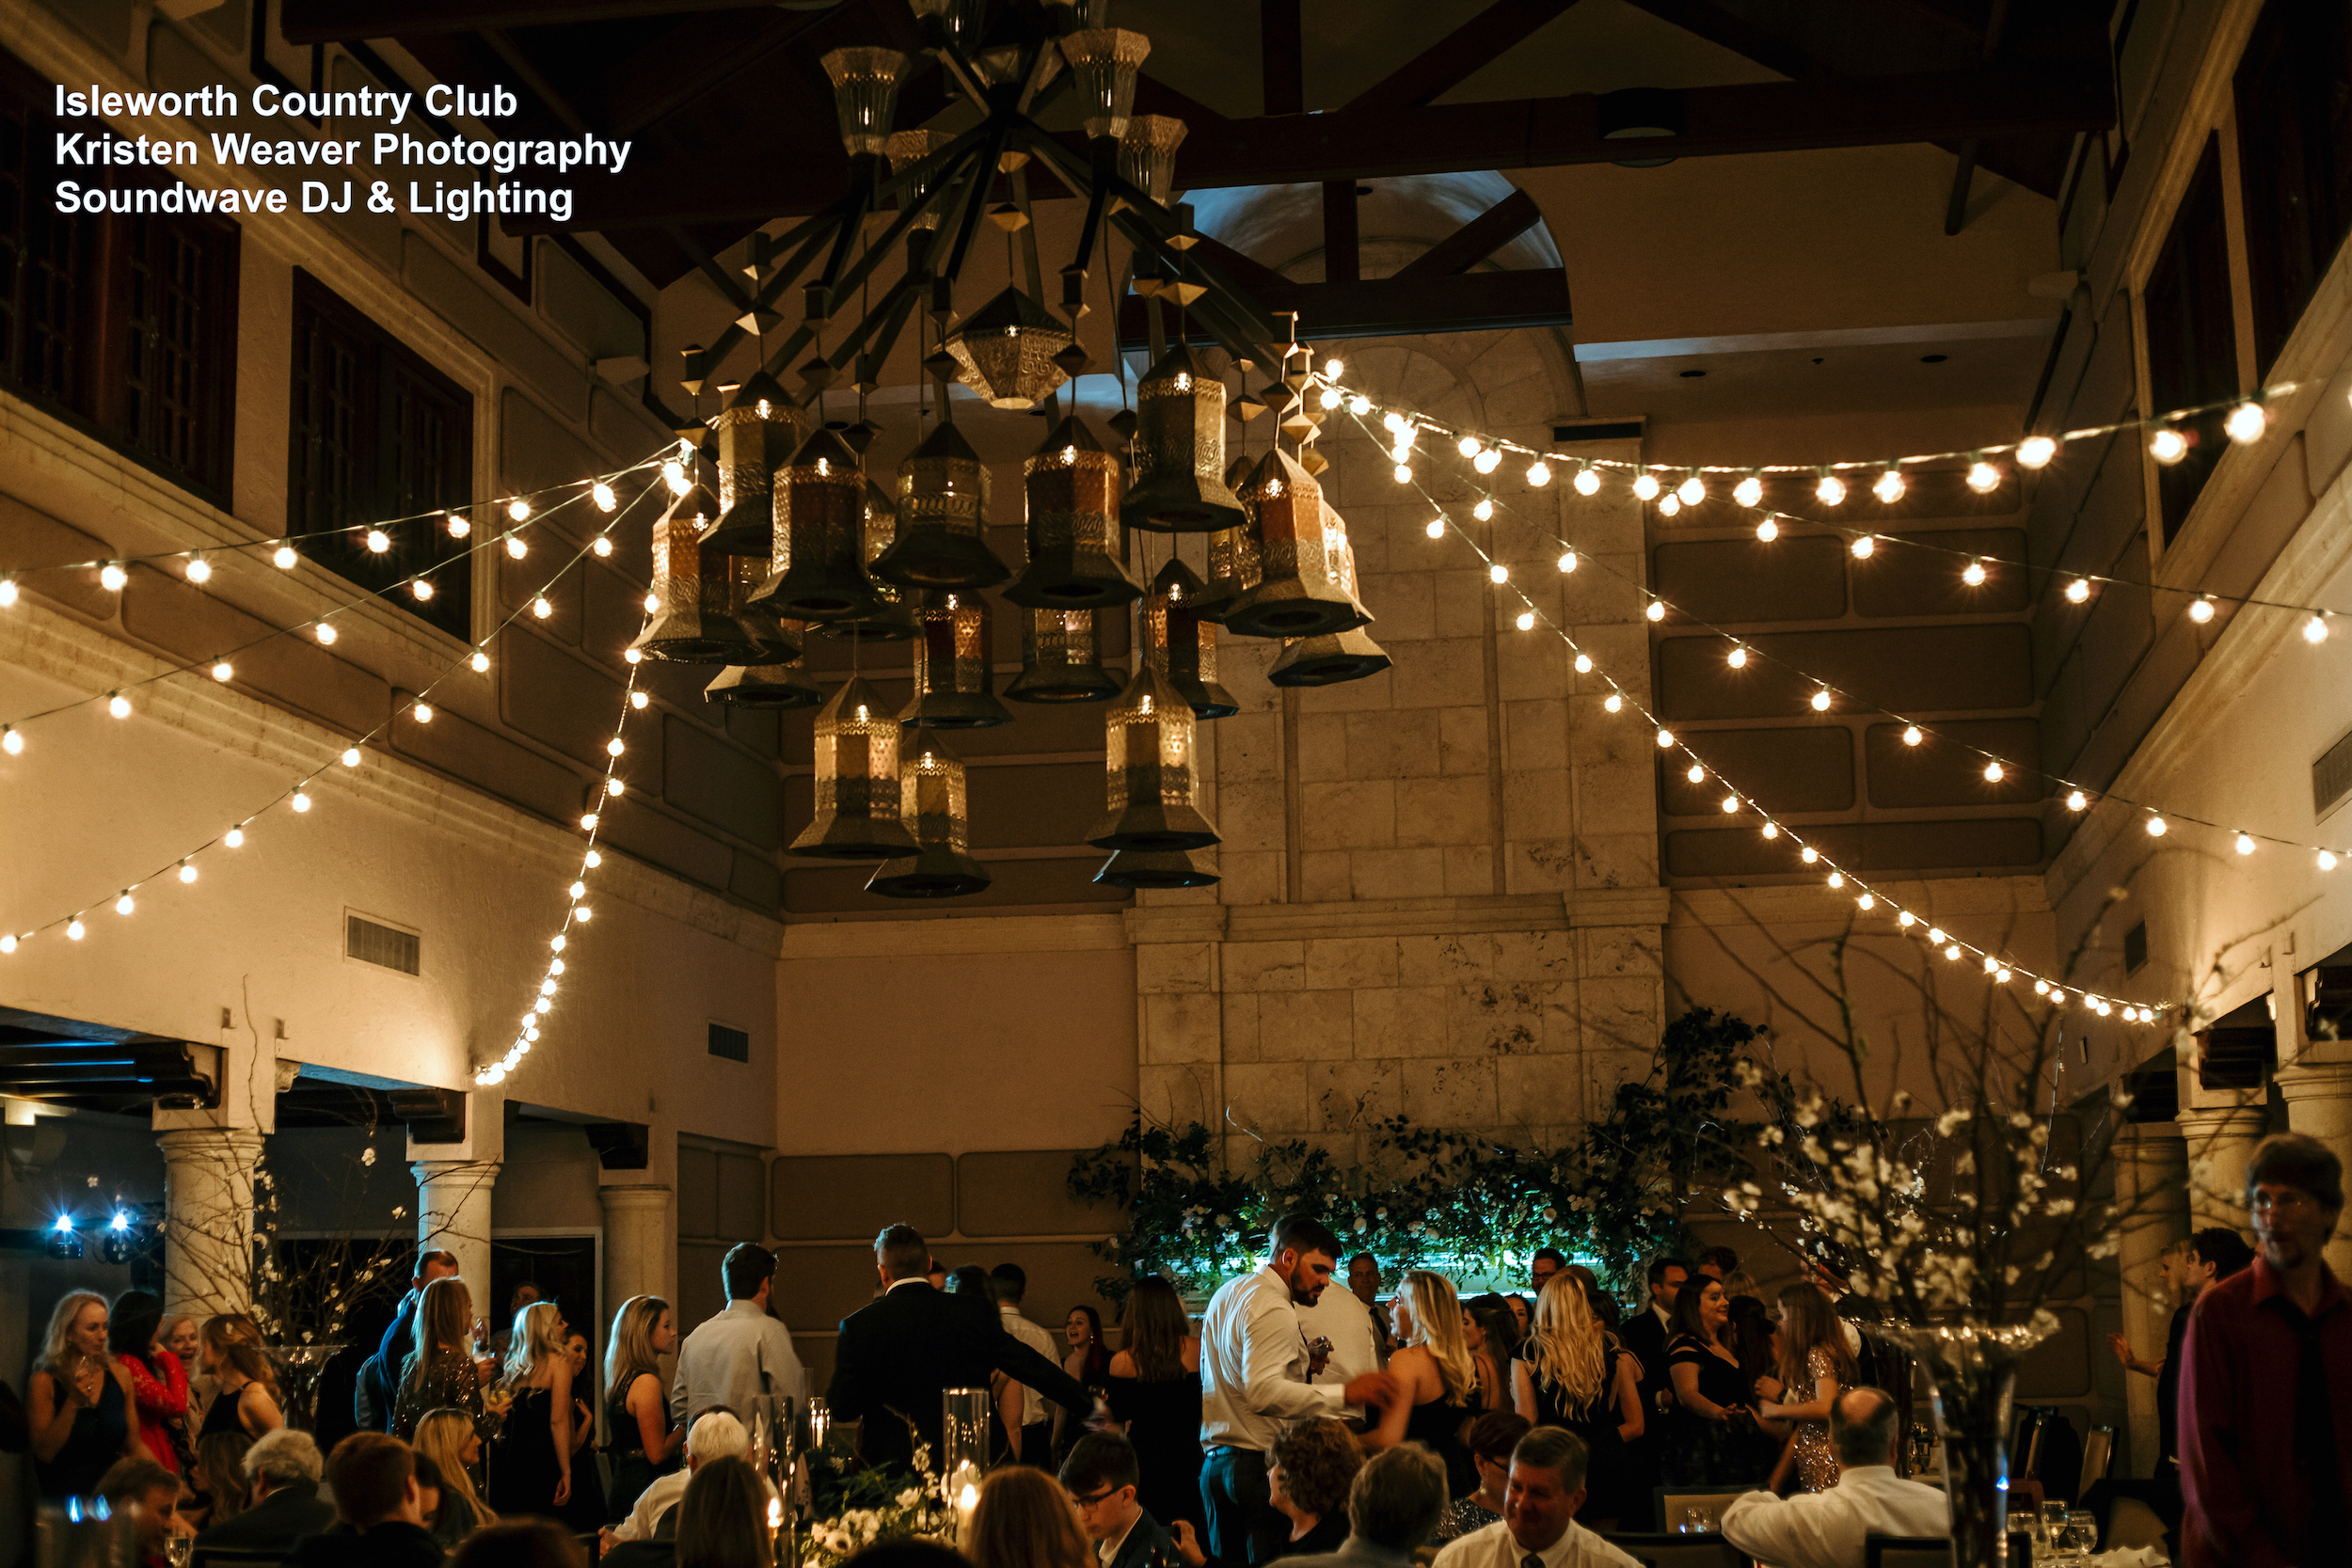 isleworth country club - orlando wedding venue - soundwave entertainment